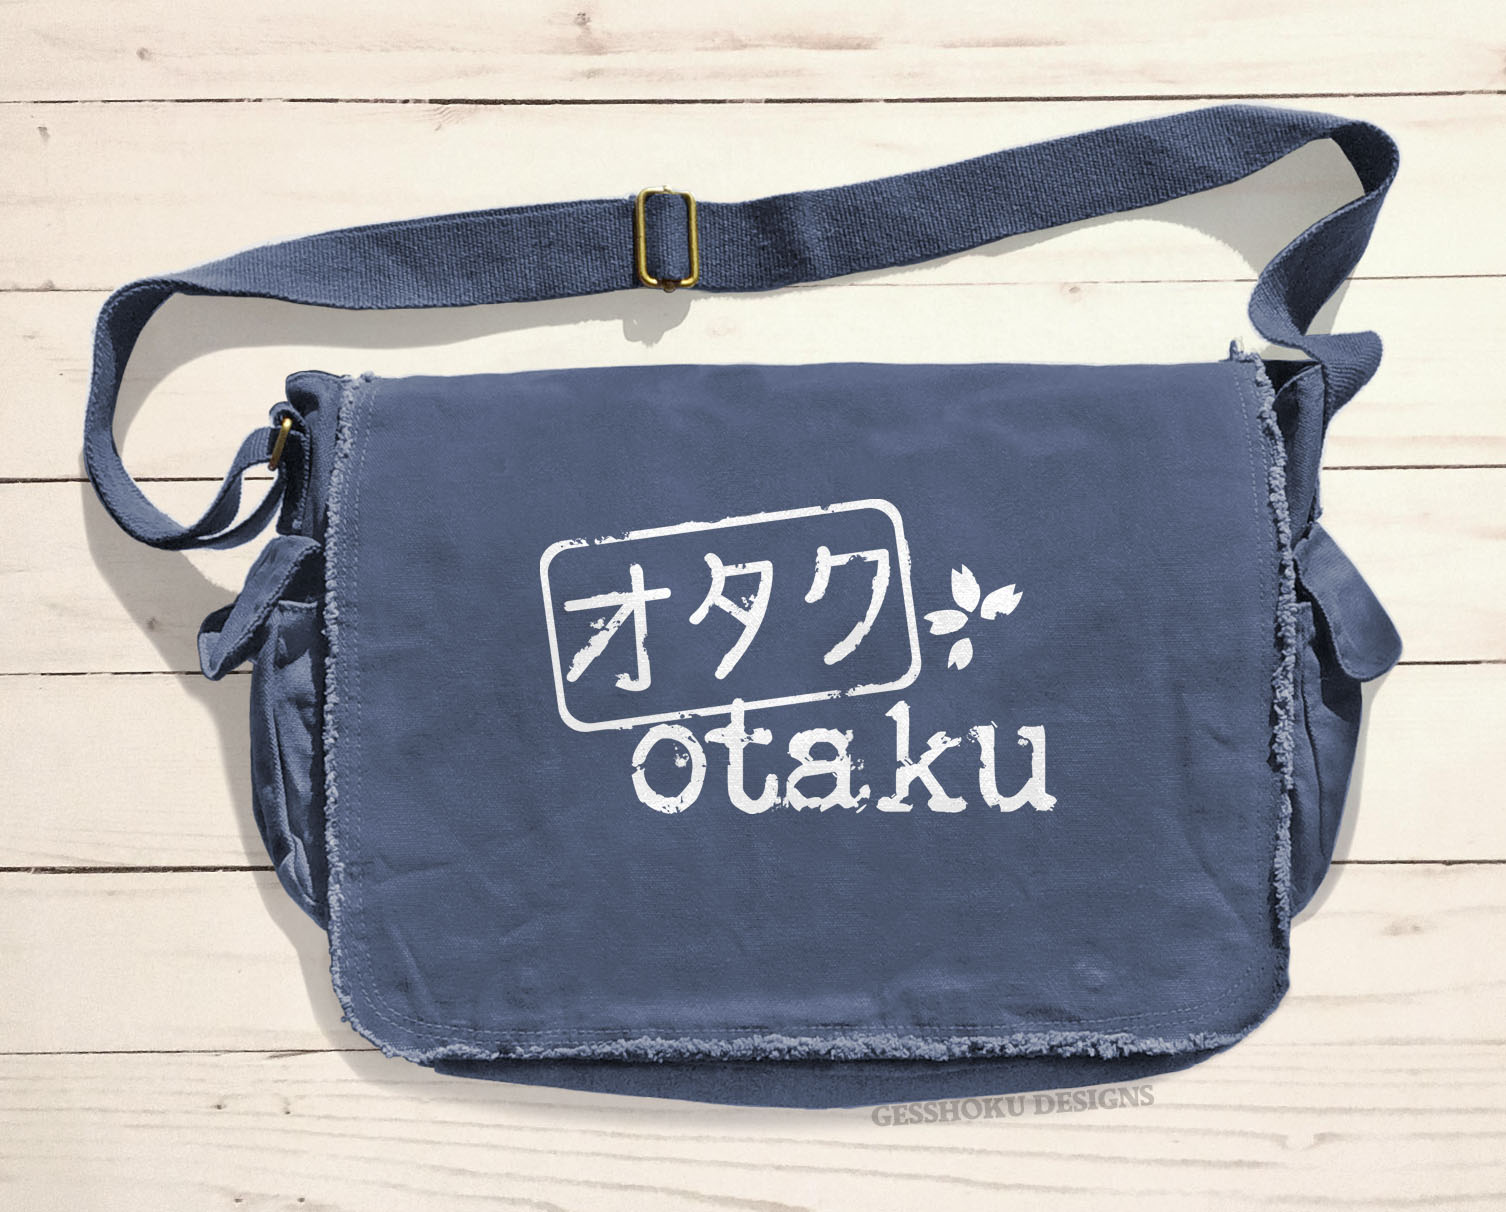 Otaku Stamp Messenger Bag - Denim Blue